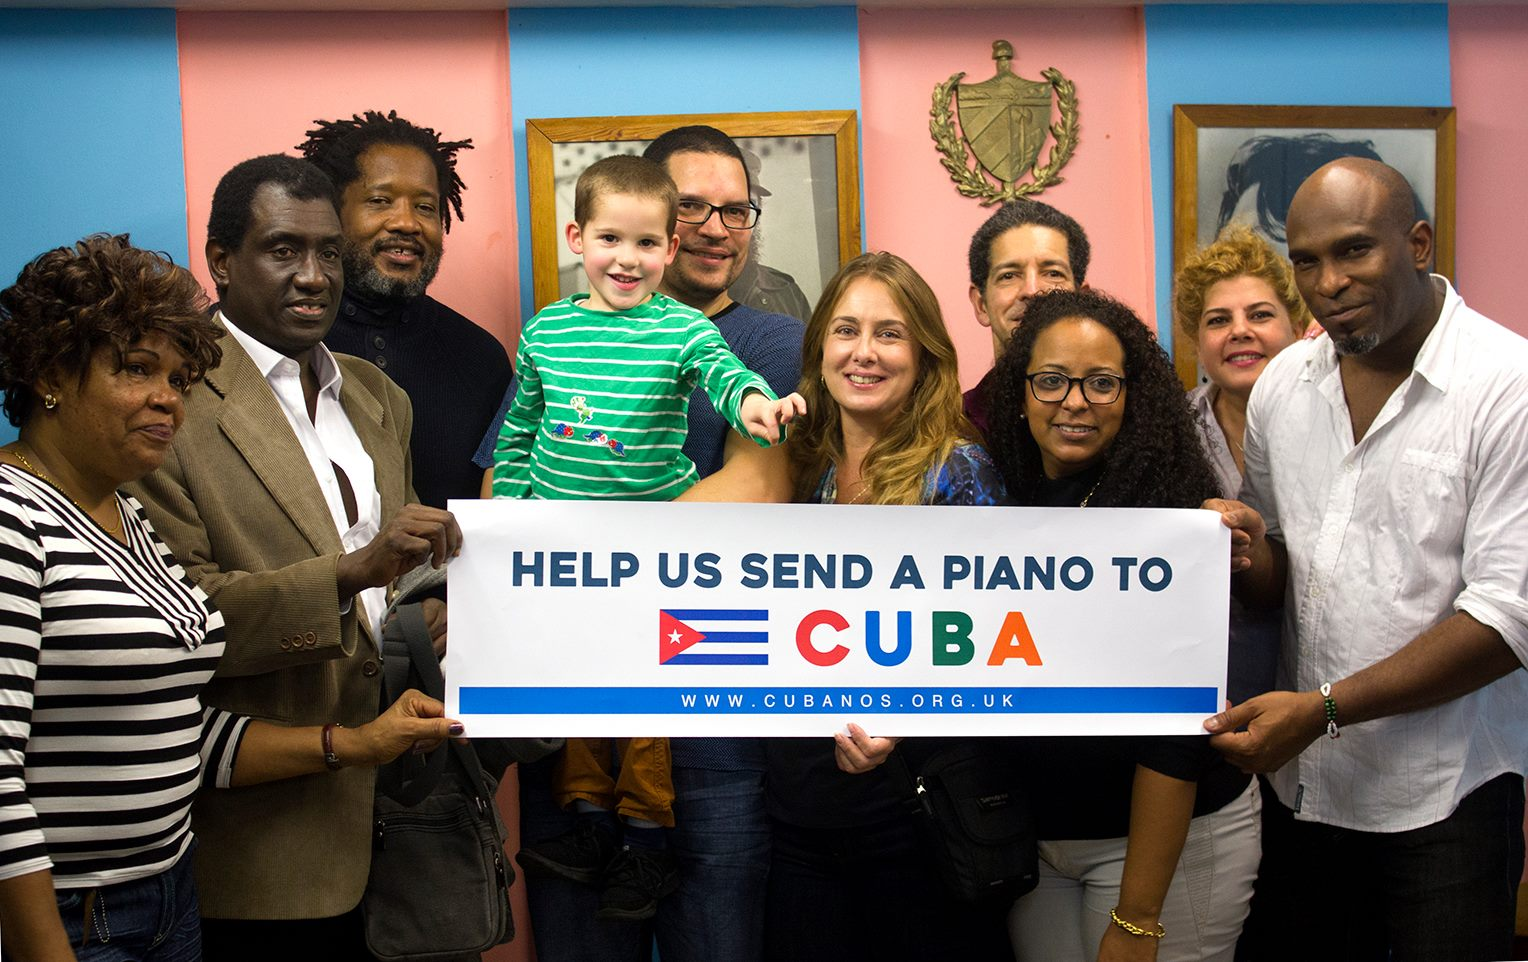 Help us send a piano to Cuba